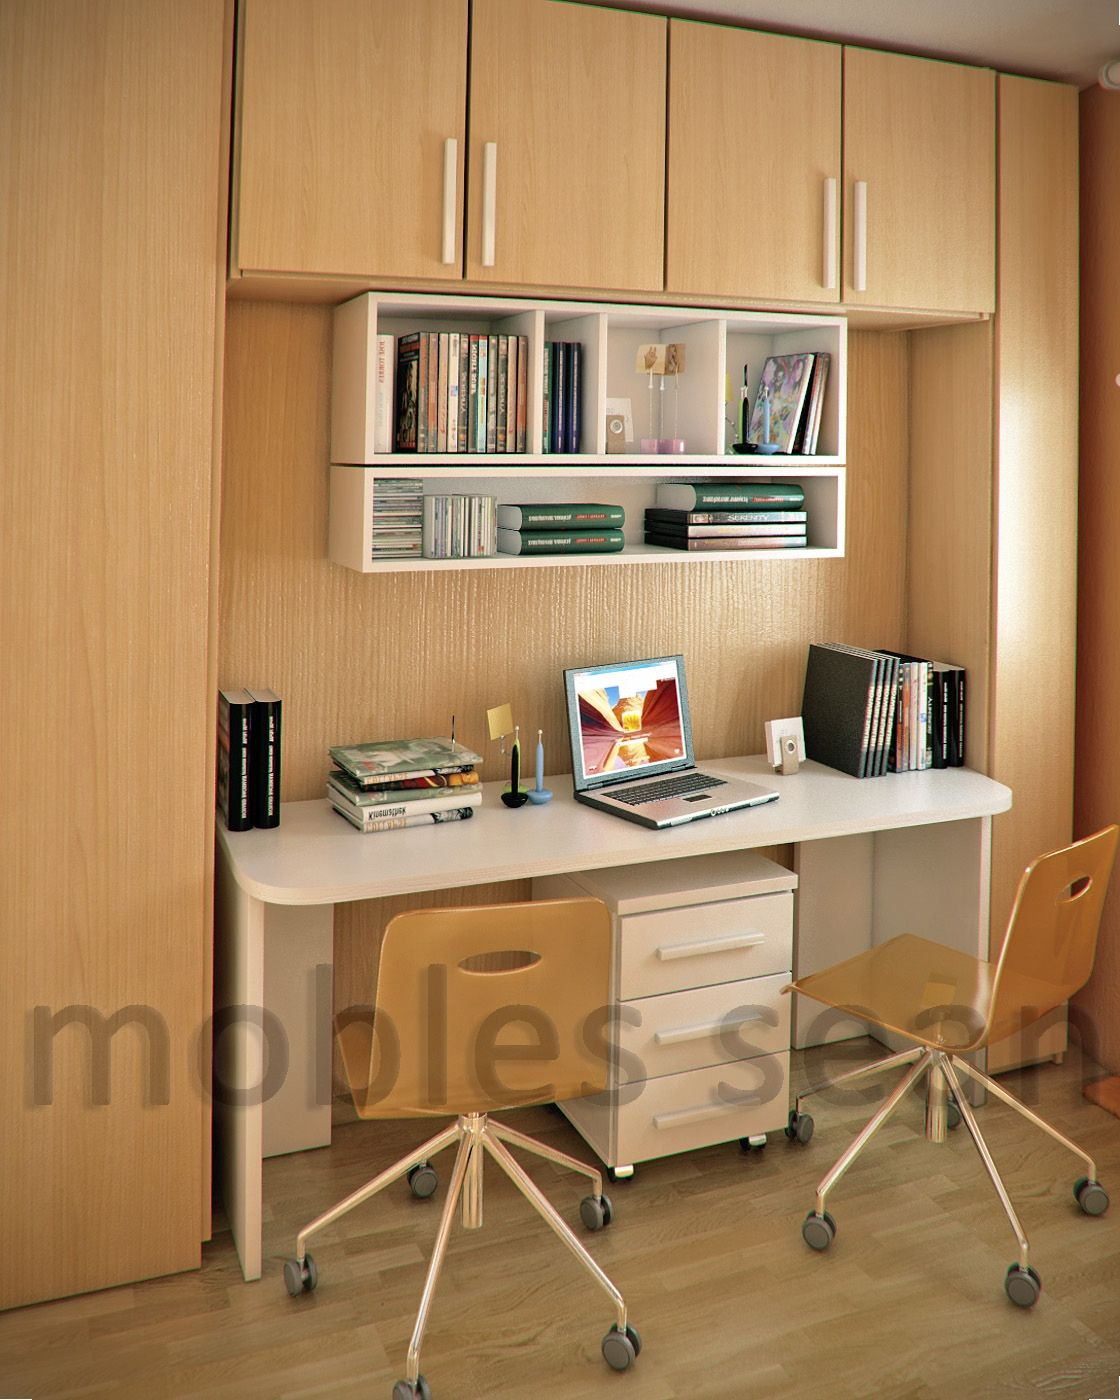 Small Study Room Area With Wood Storage White Wall Shelves Computer Desk And Swivel Chairs